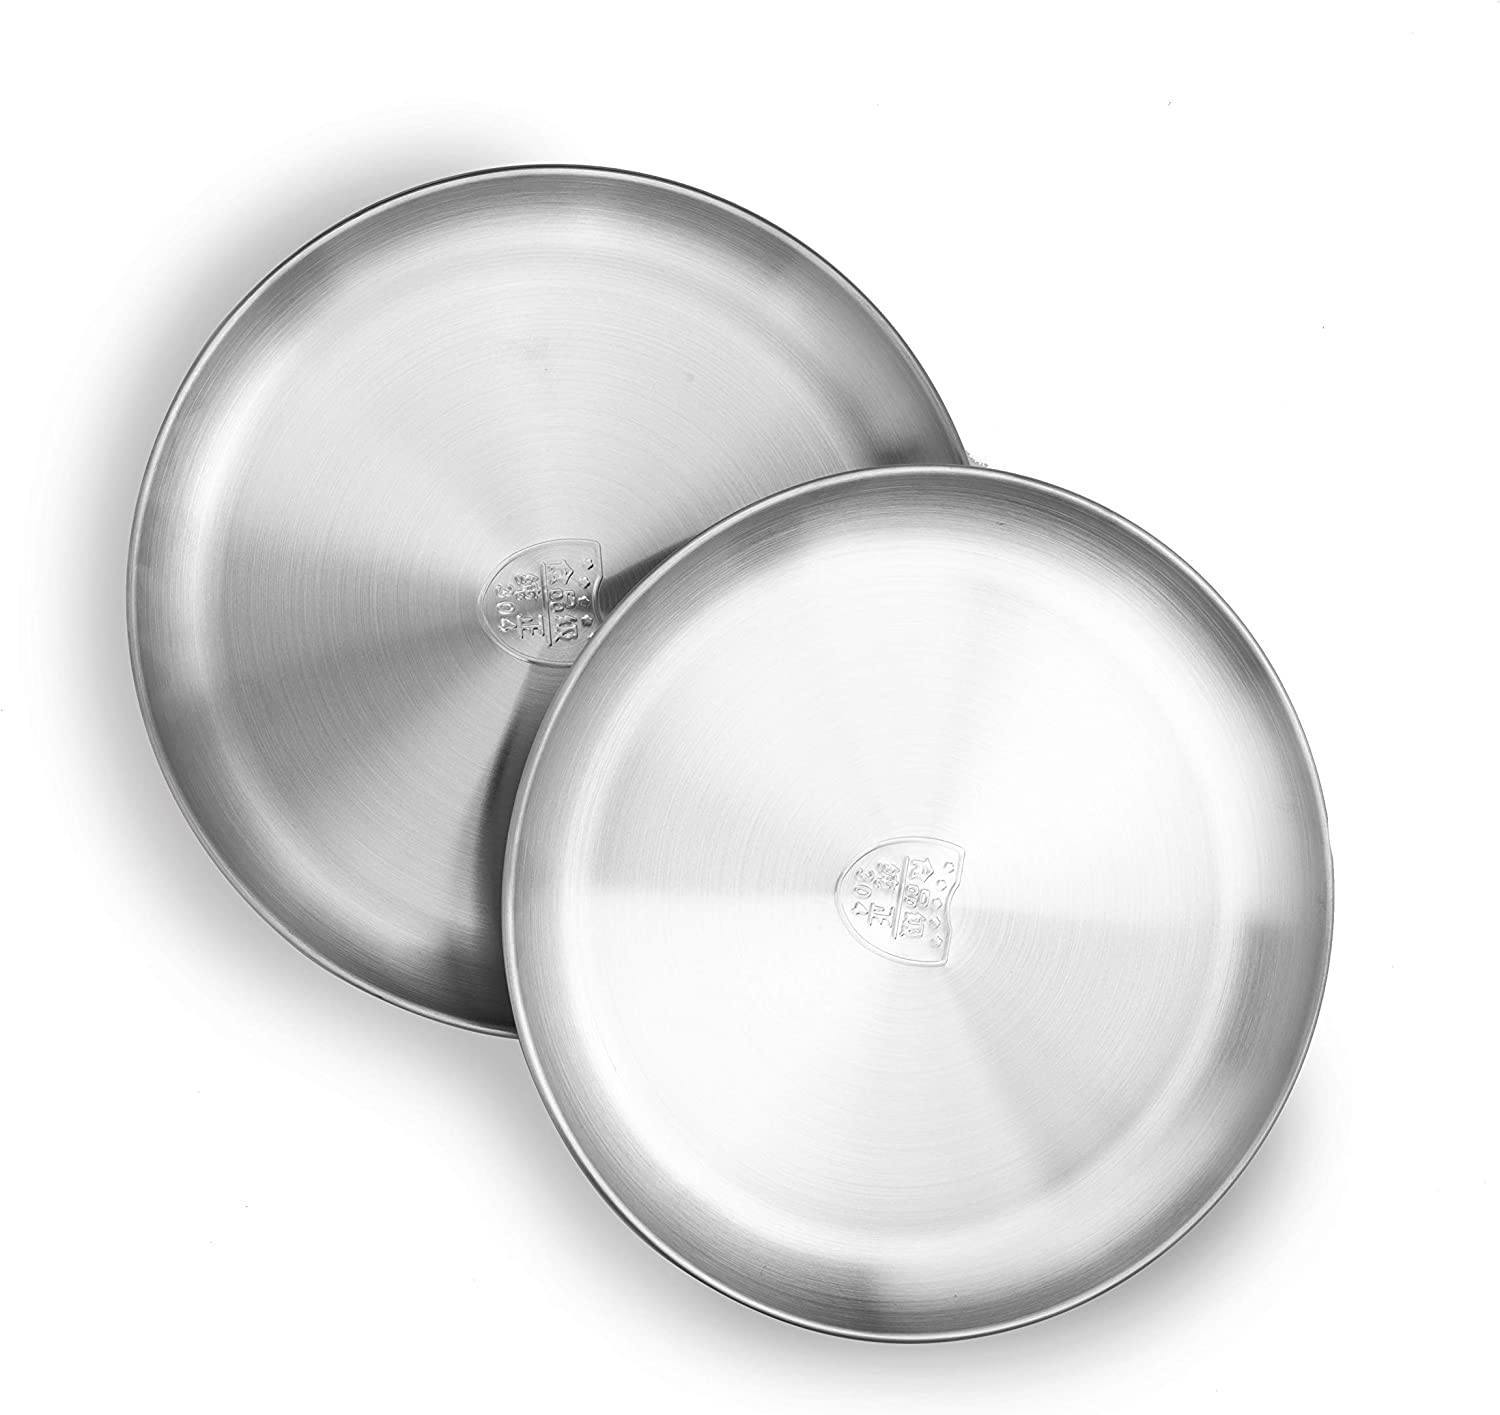 VENTION Pizza Baking Pan, Food Grade Stainless Steel Dinner Plates, 10 1/5 Inch Pizza Baking Tray for Barbecue, Baking, Set of Two